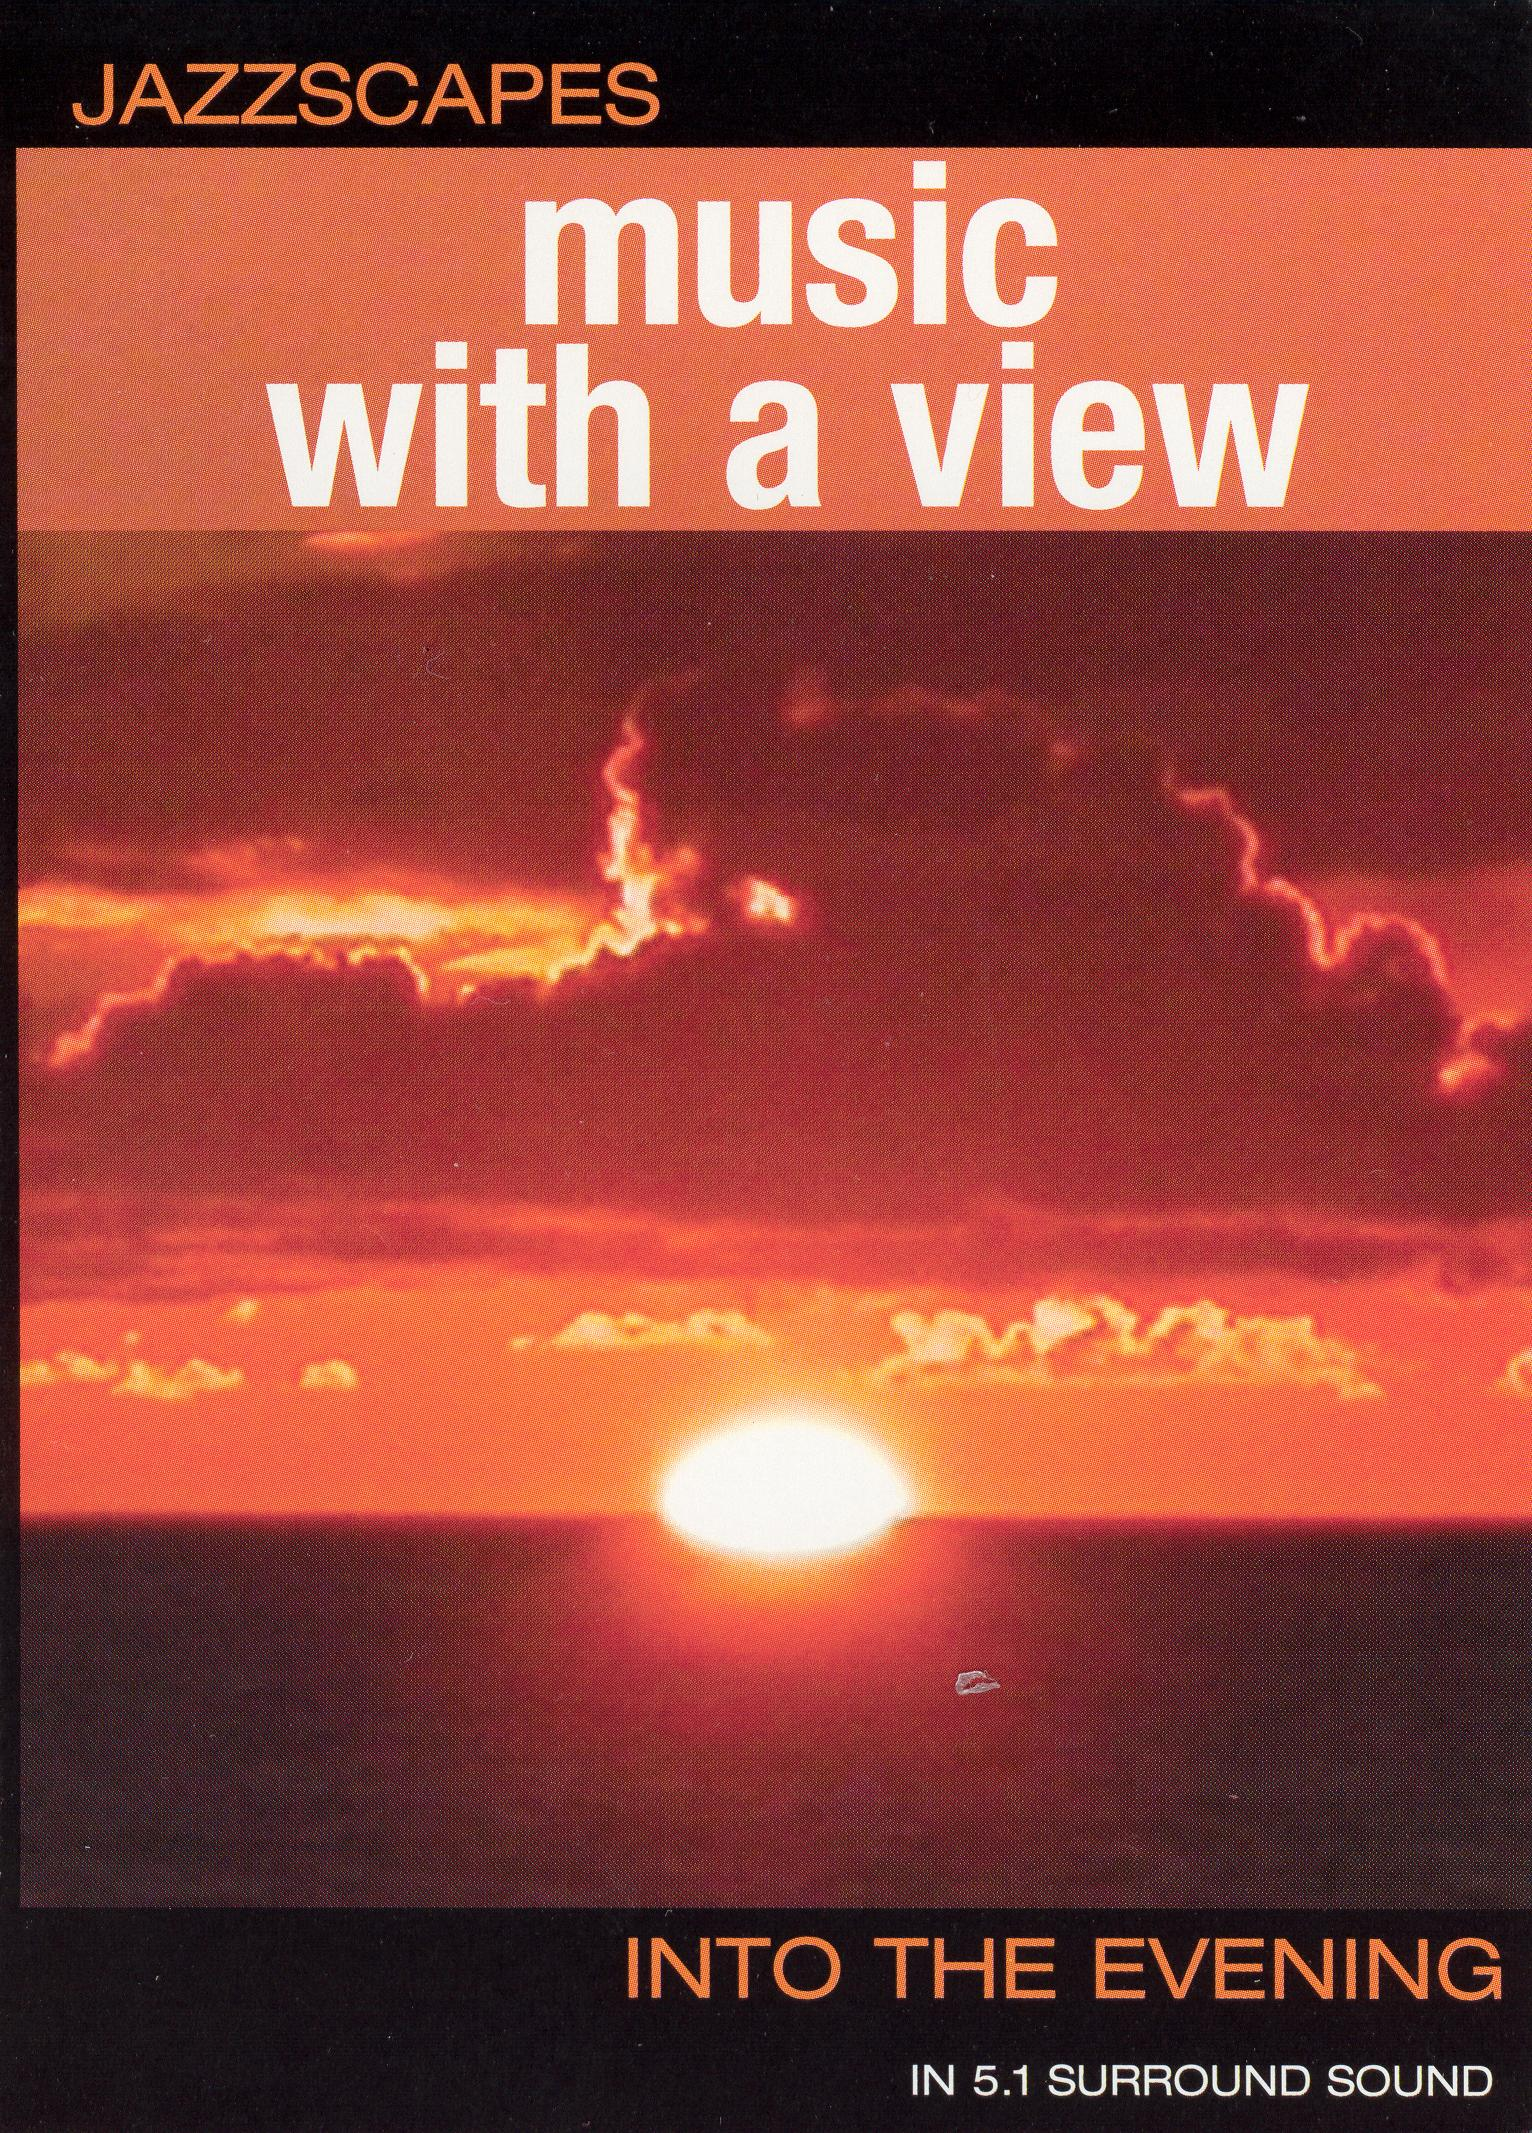 Jazzscapes: Music With a View - Into the Evening